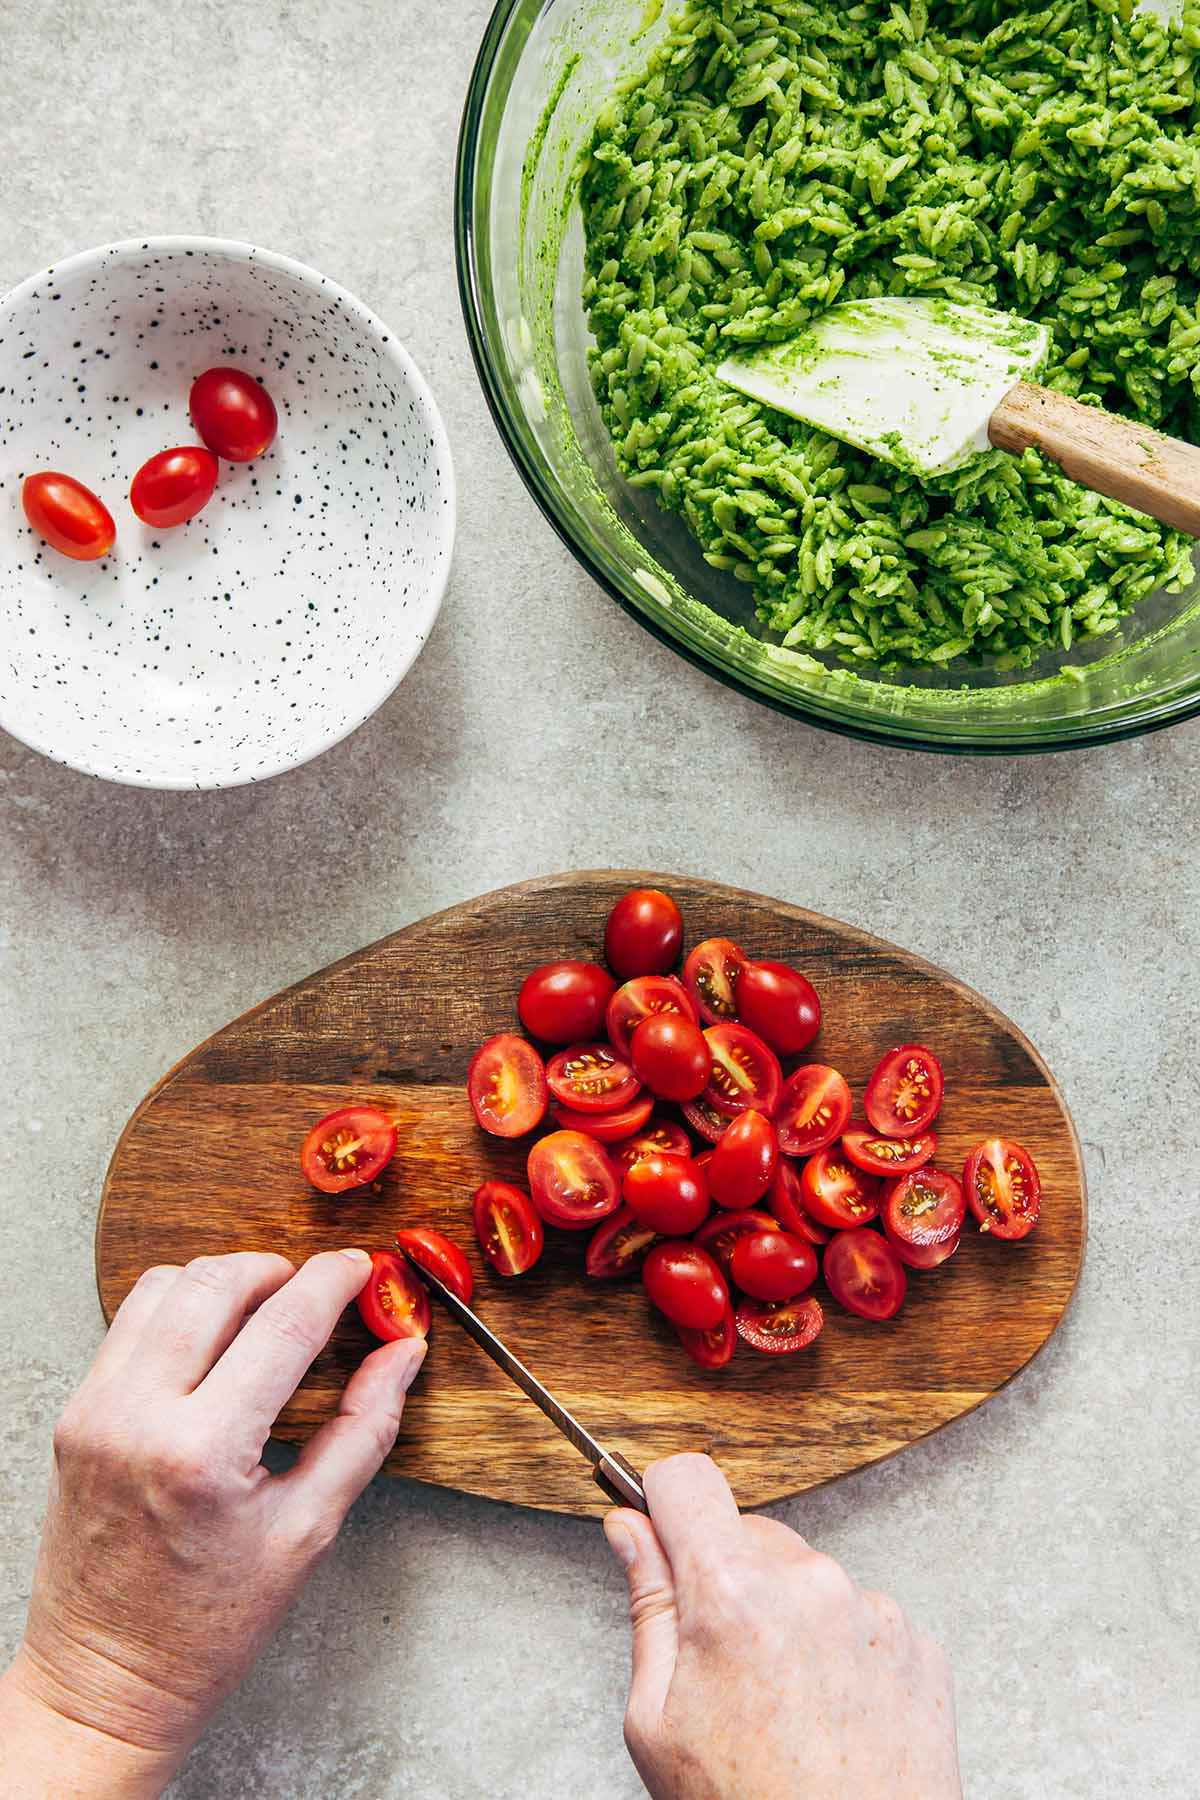 Hands slicing cherry tomatoes on a wooden board next to a small white bowl of tomatoes, and a larger bowl of cooked orzo with pesto.